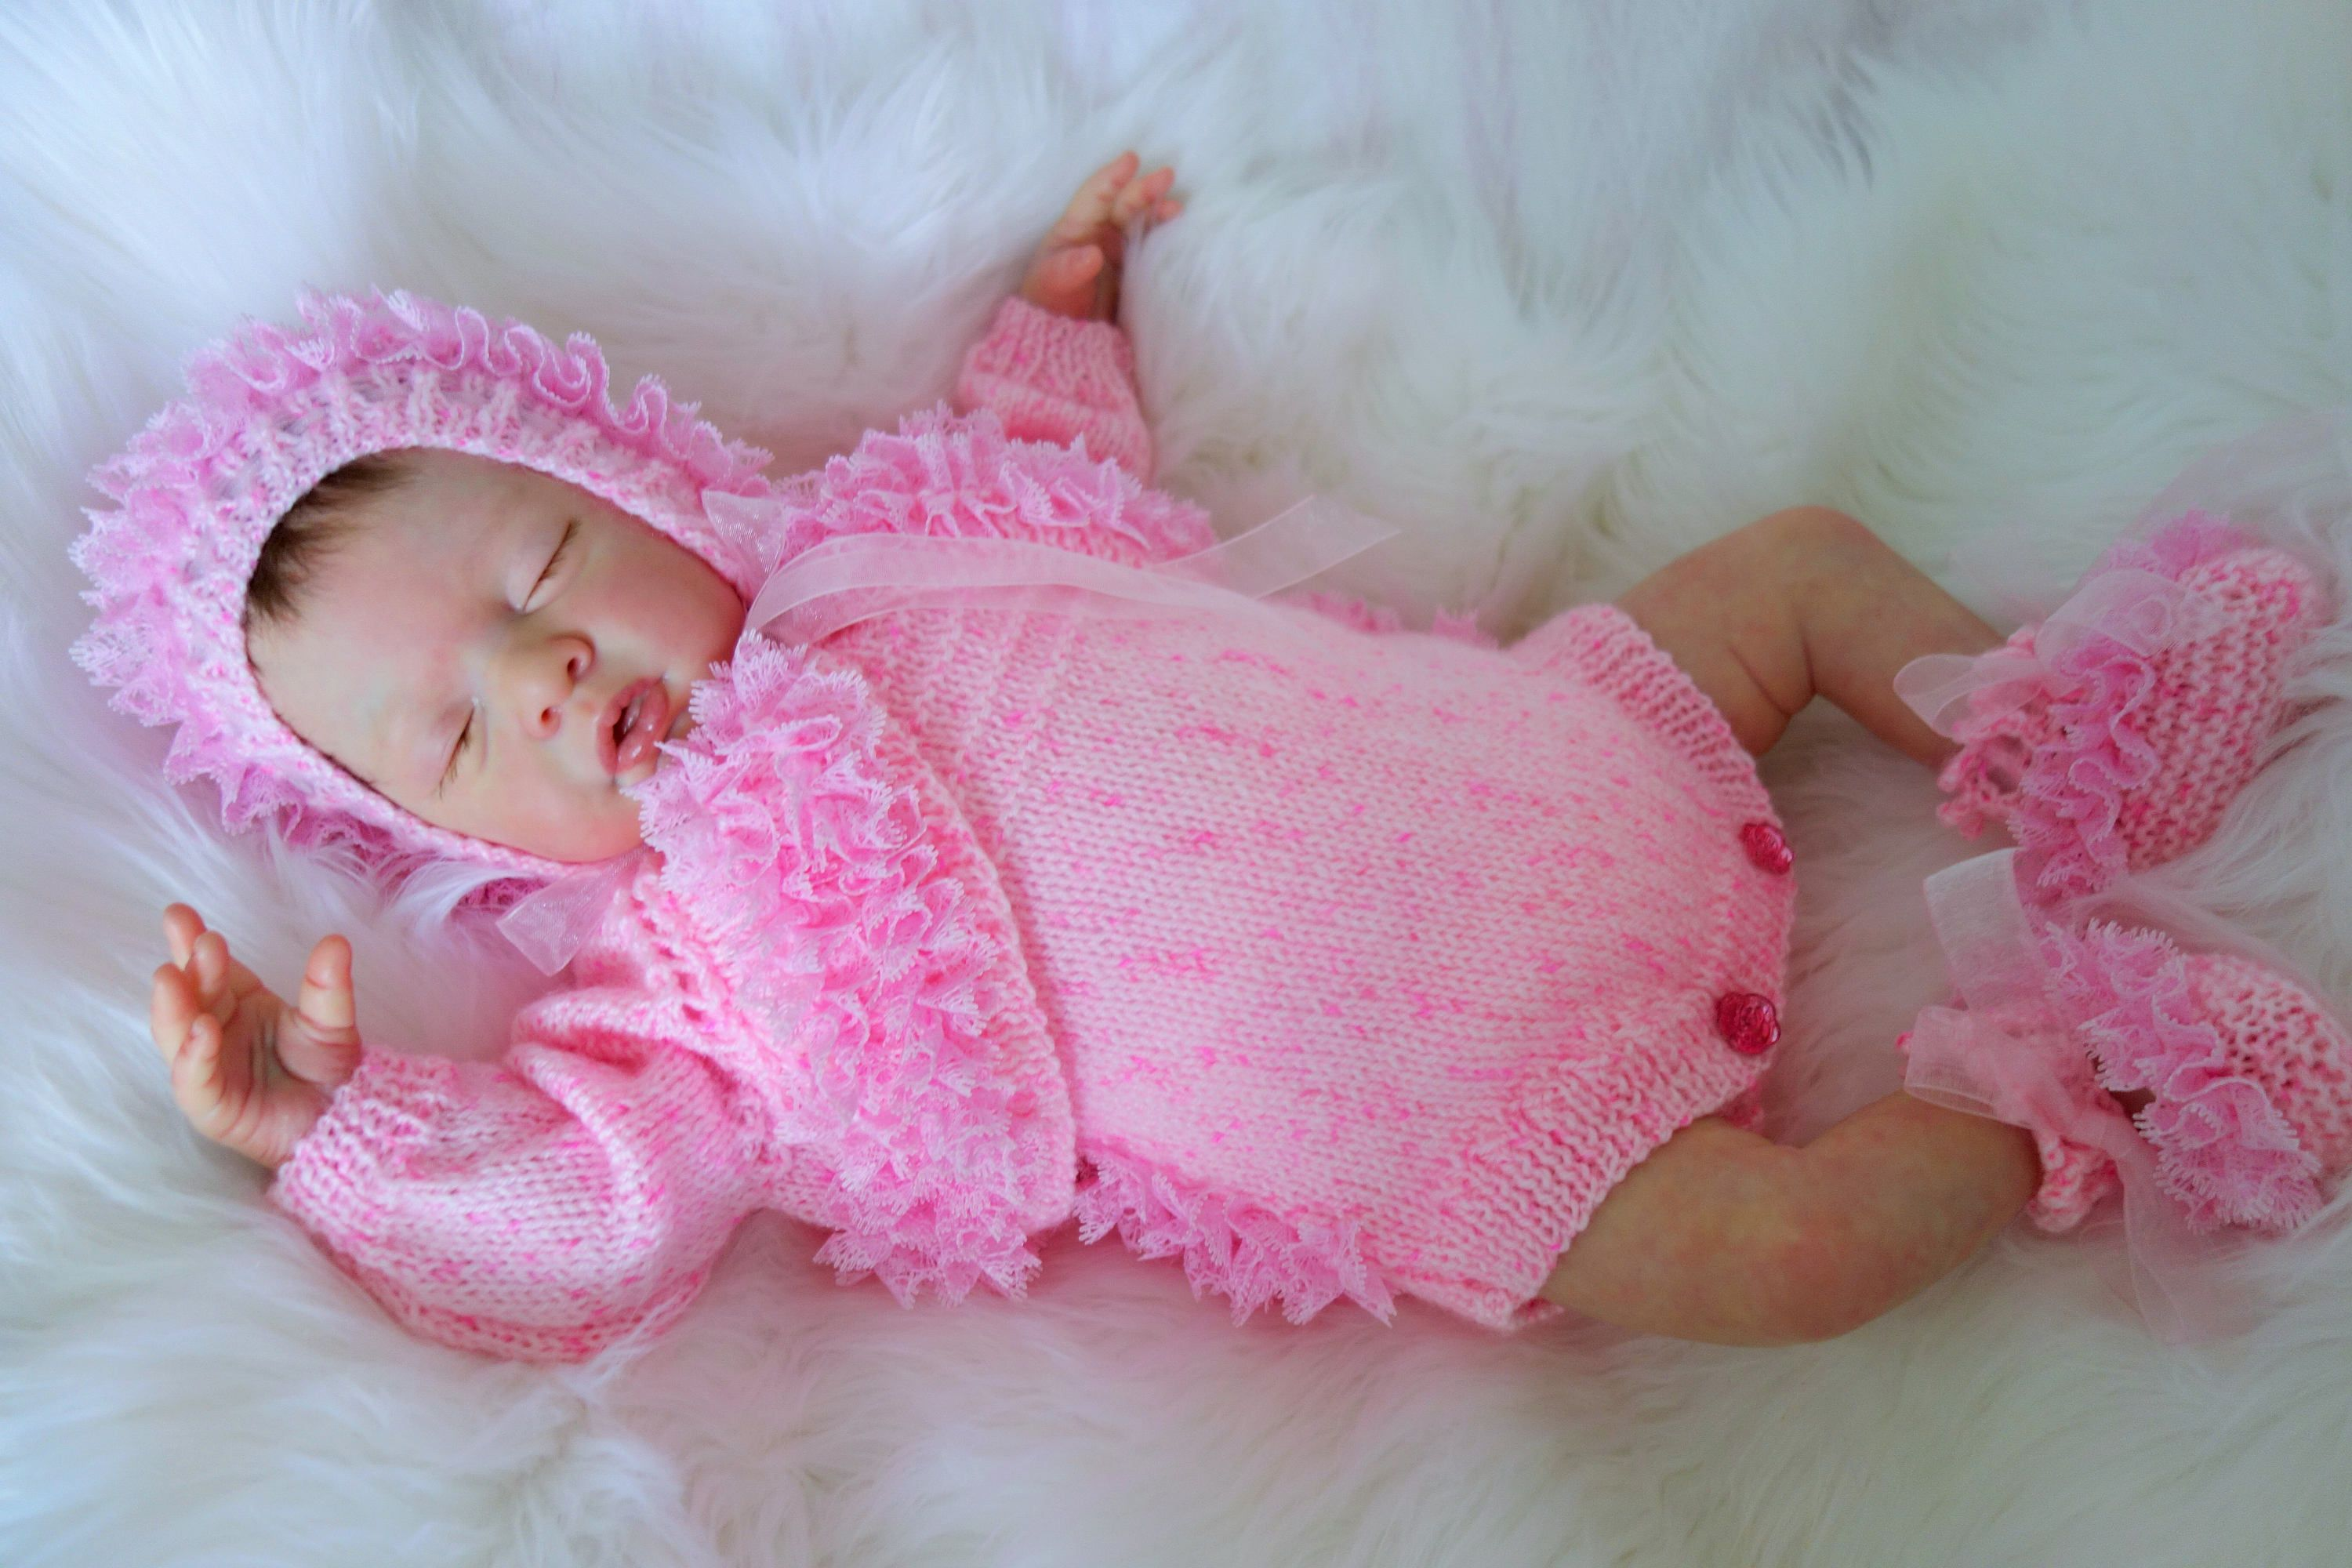 1daaa47453e3 Hand knitted newborn baby girl s fancy lace trimmed pink outfit ...